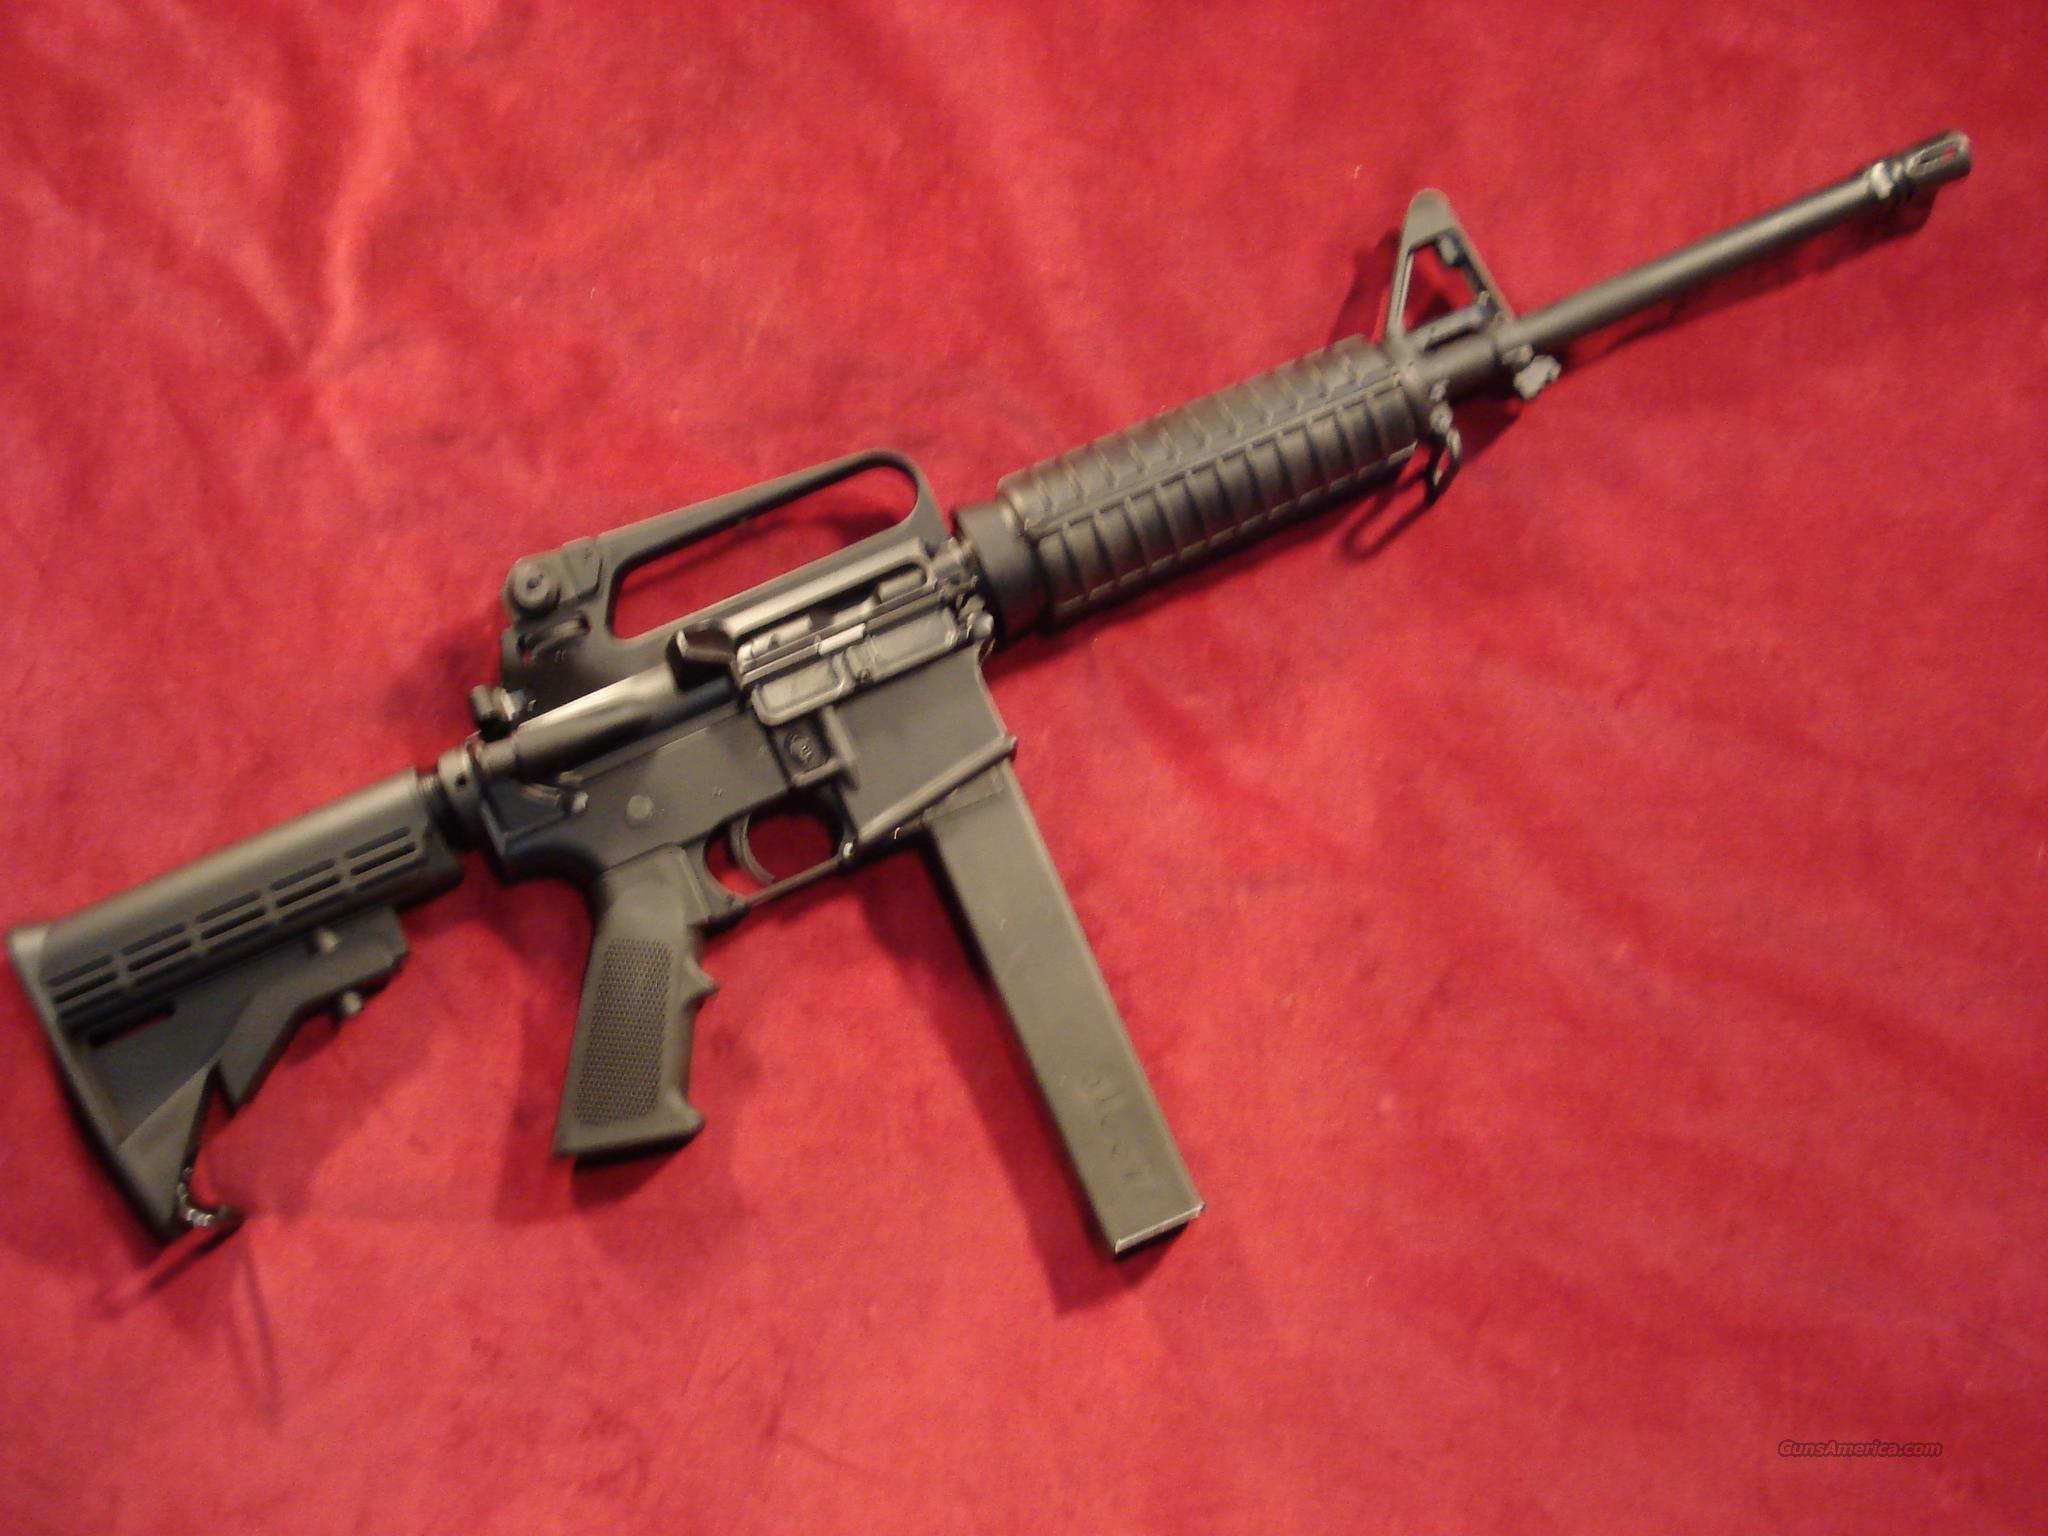 OLYMPIC ARMS K9 9MM CARBINE NEW  Guns > Rifles > Olympic Arms Rifles